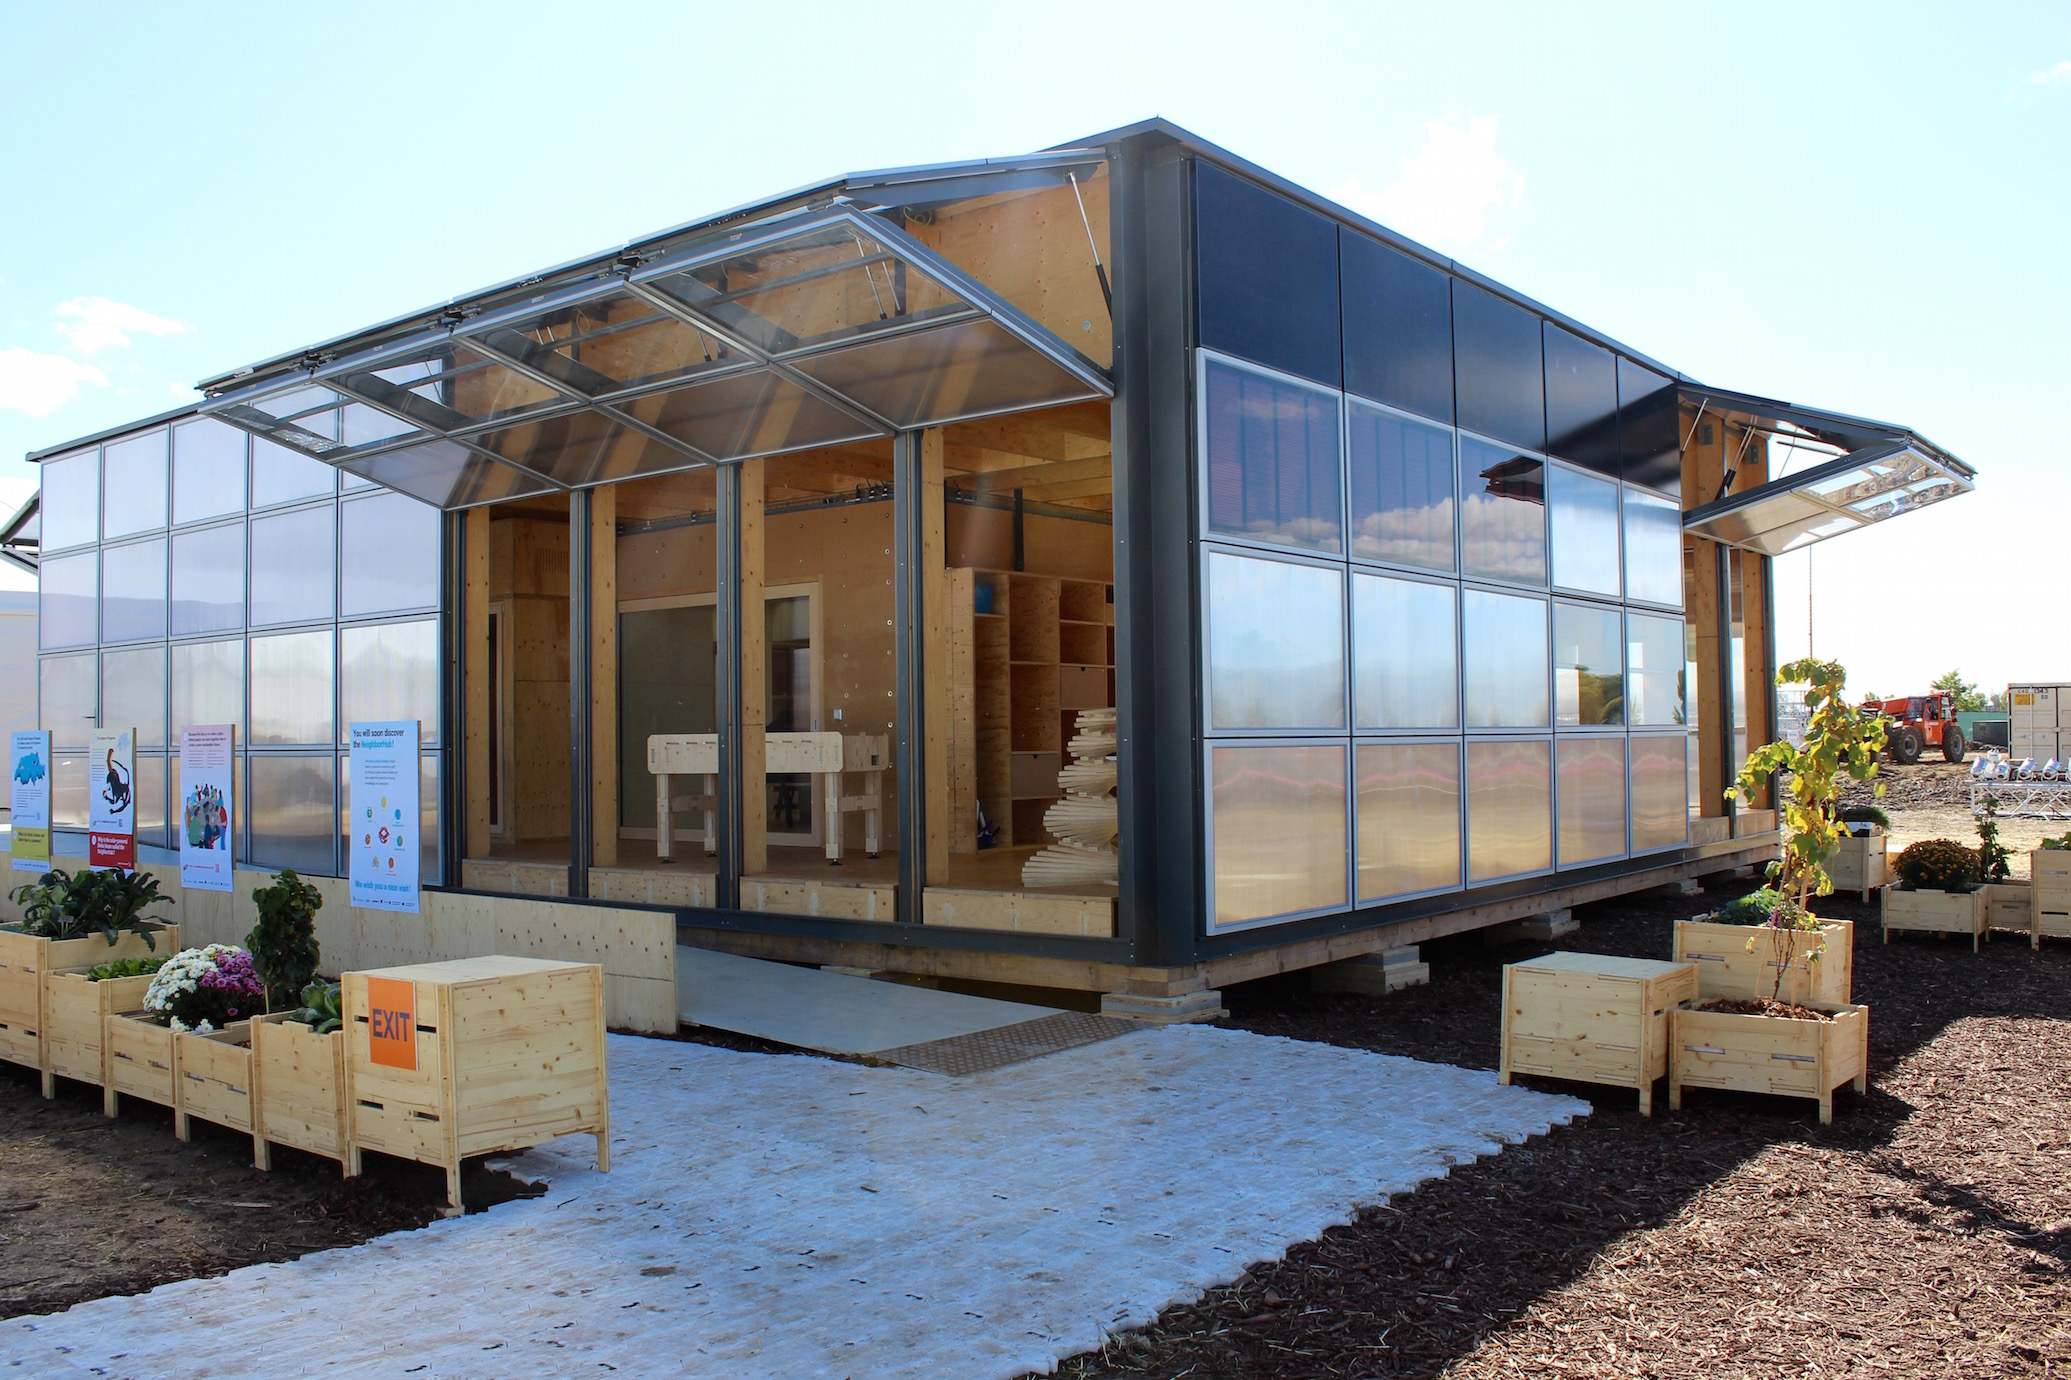 Solar Decathlon 2017, Denver Solar Decathlon, Solar City Denver, Solar Power, 303 Magazine, Cori Anderson